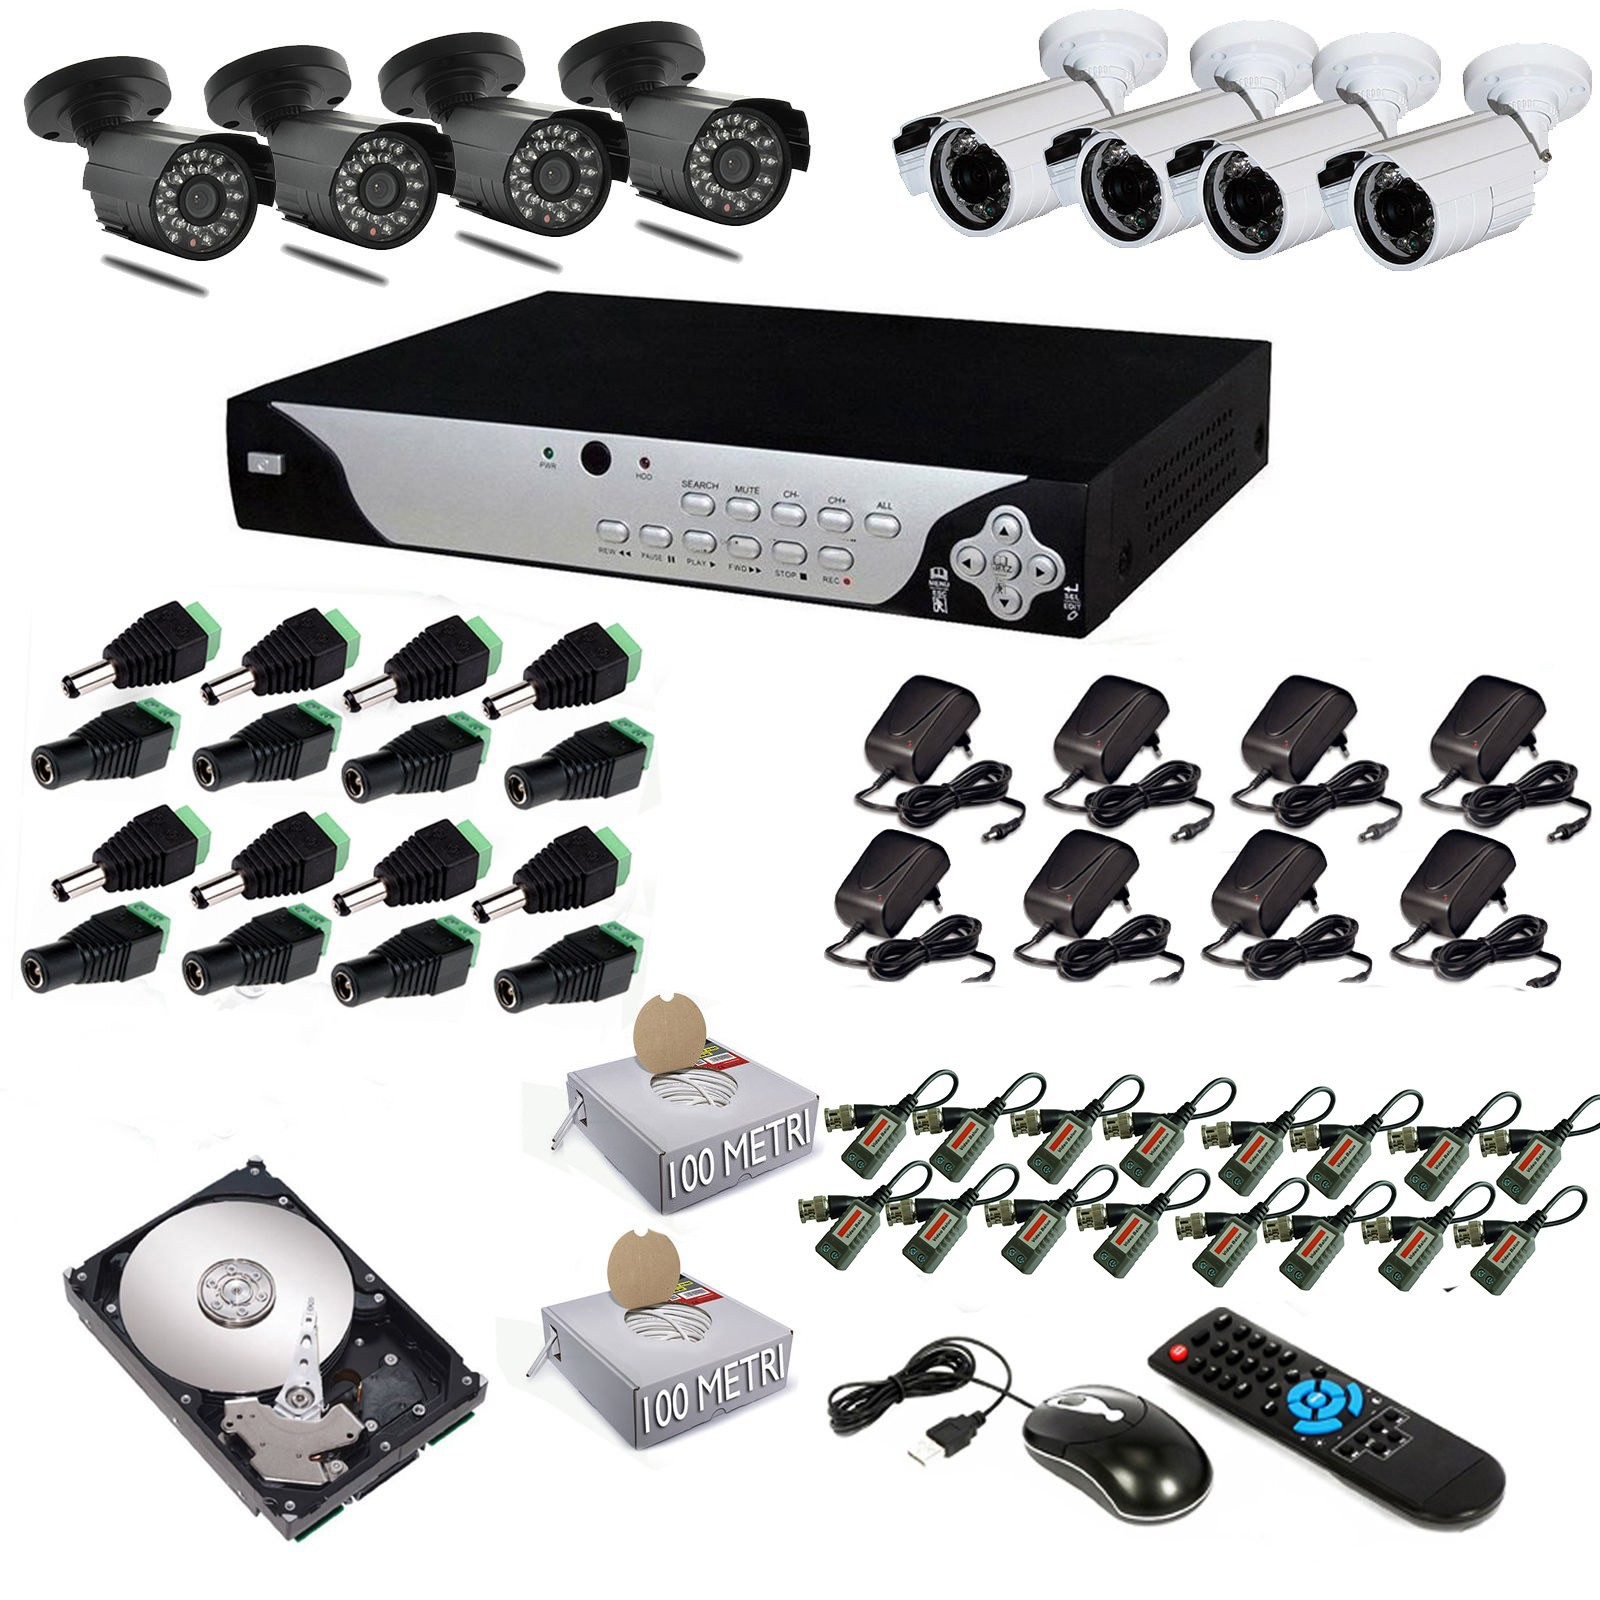 KIT DVR 8 TELECAMERE 600 TVL VIDEOSORVEGLIANZA LAN HD 500GB BALUN ANDROID IPHONE Vultech Life ...